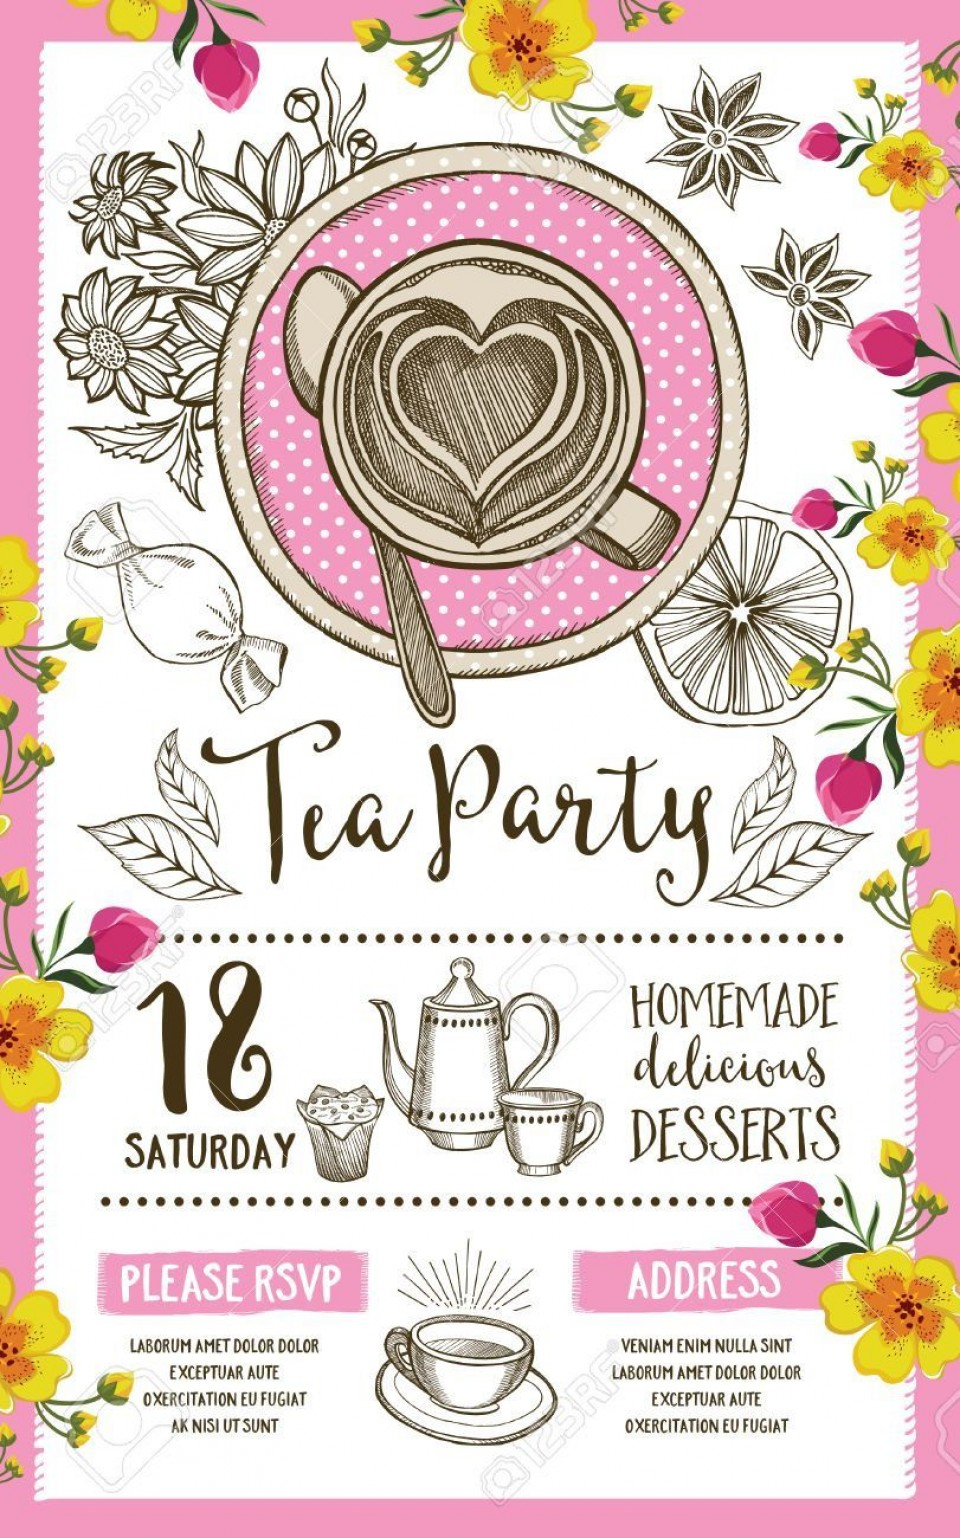 004 Wonderful Tea Party Invitation Template Inspiration  Wording Vintage Free Sample960